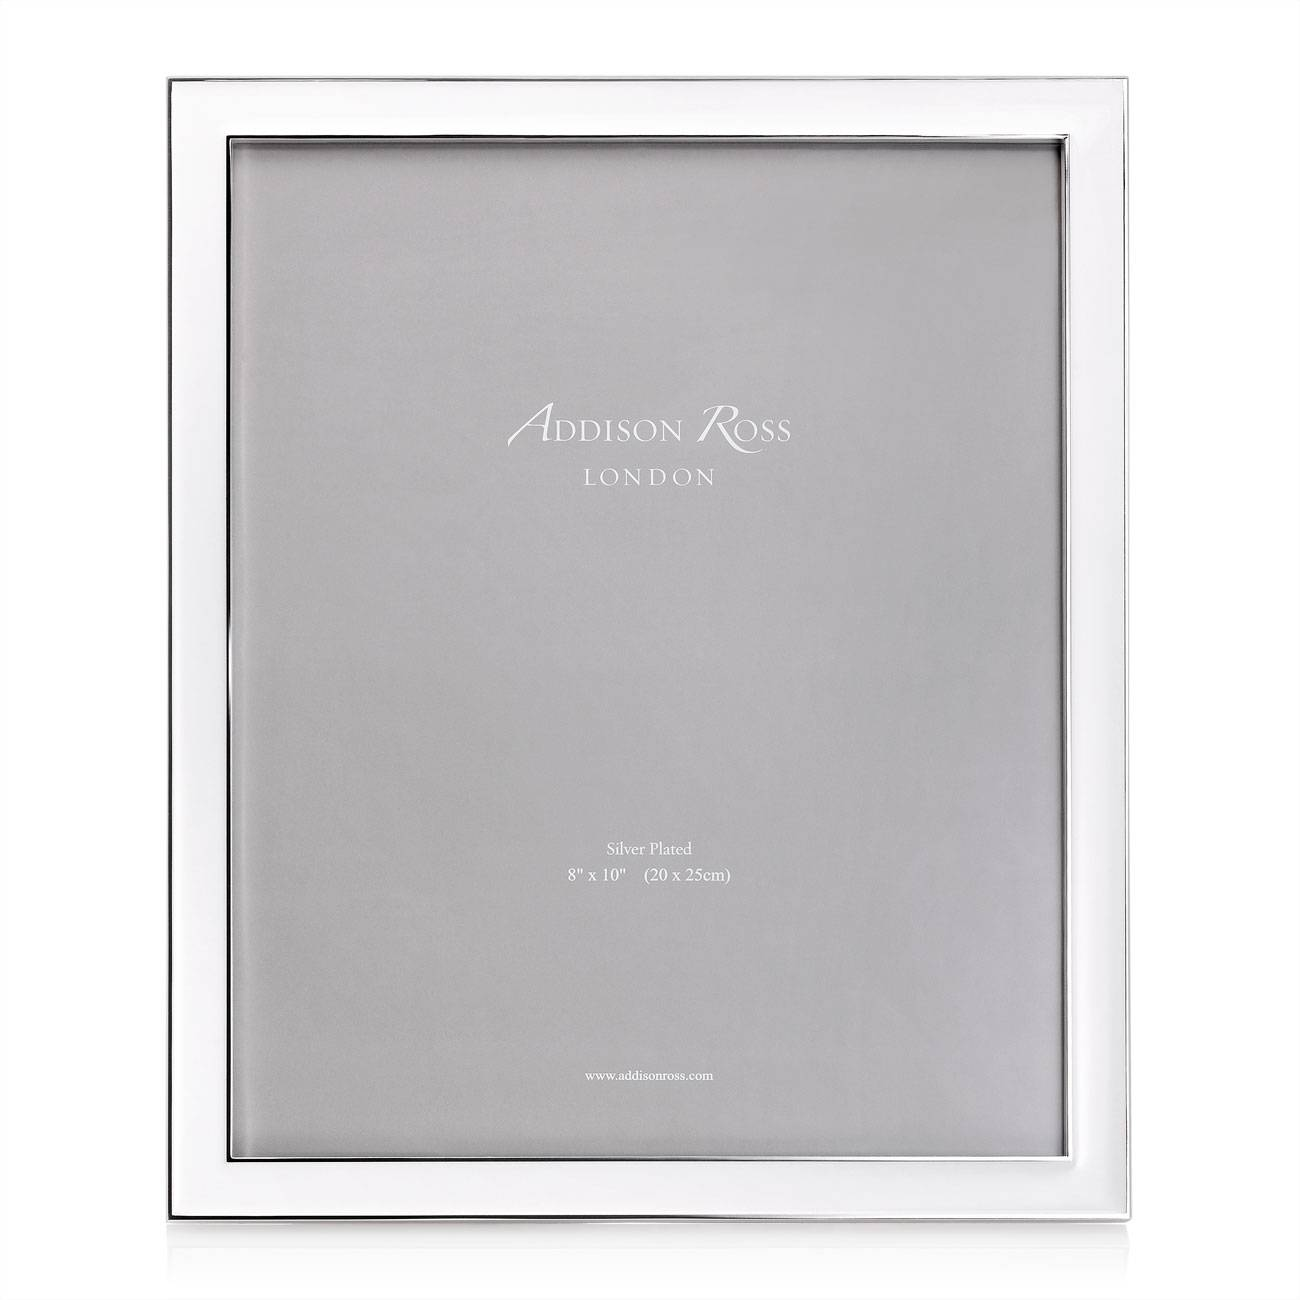 Addison Ross Enamel Frame White 8 Inch By 10 Inch